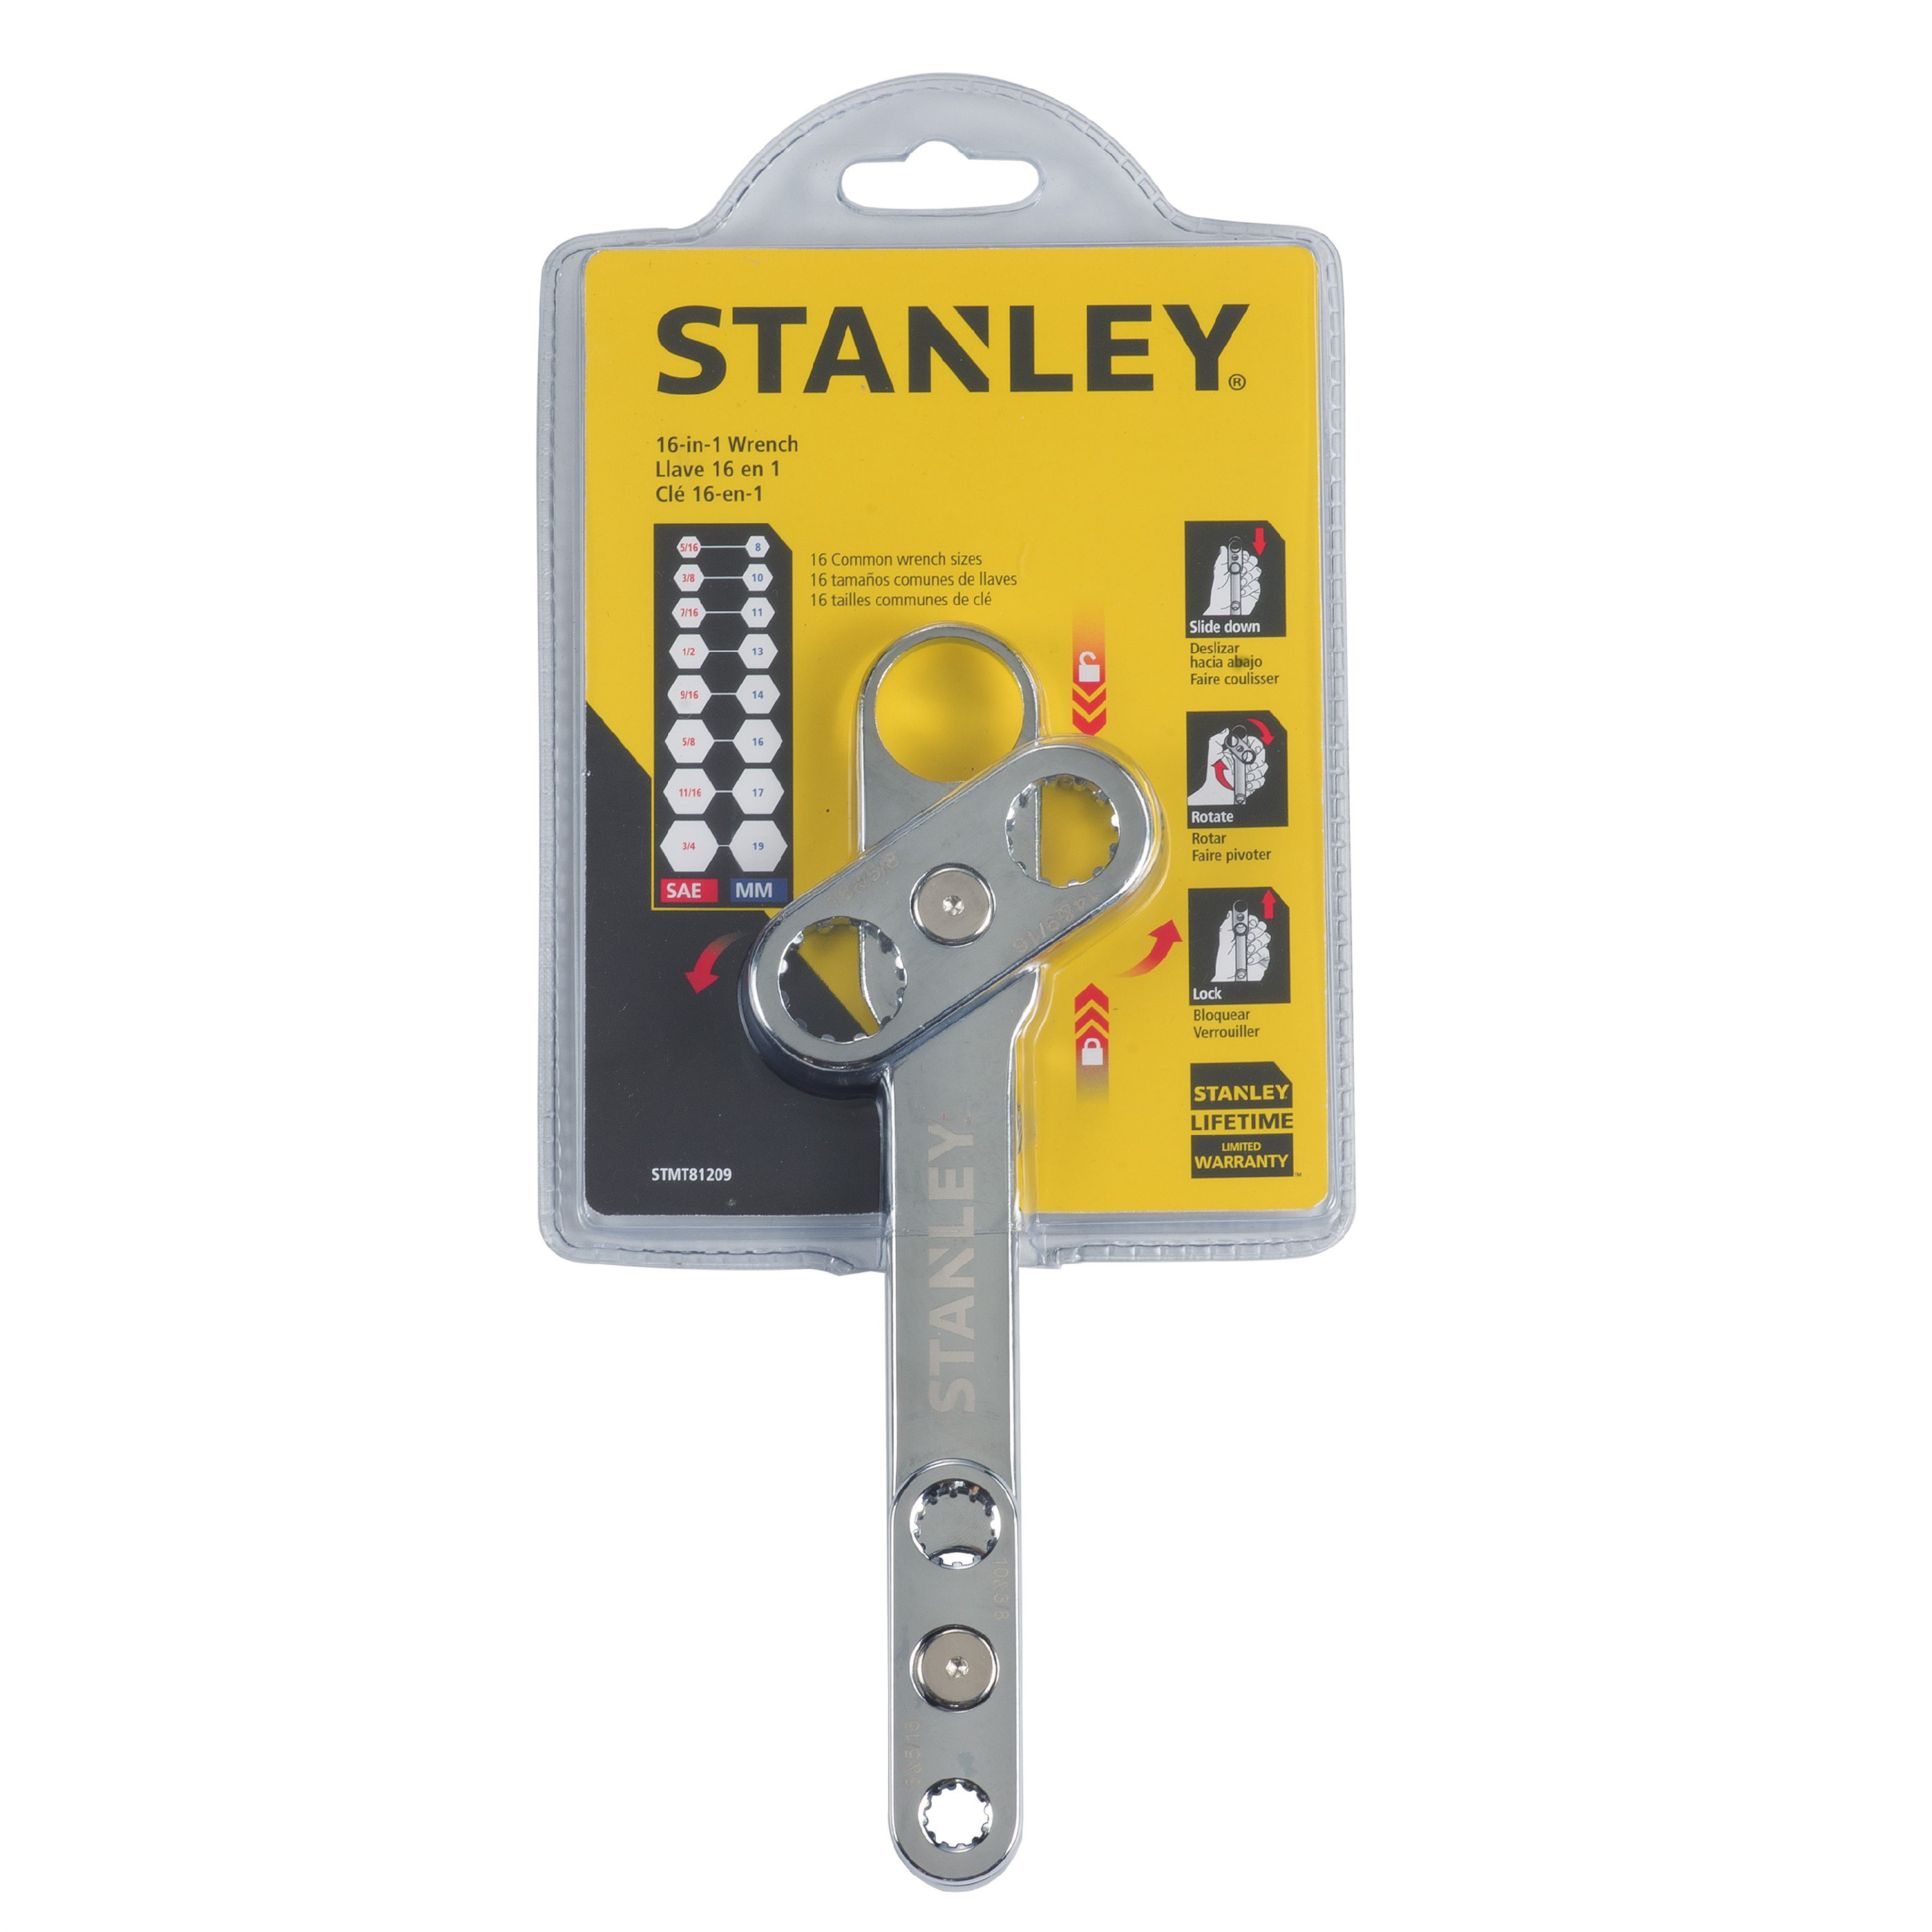 STANLEY STMT81209 16-N-1 Wrench